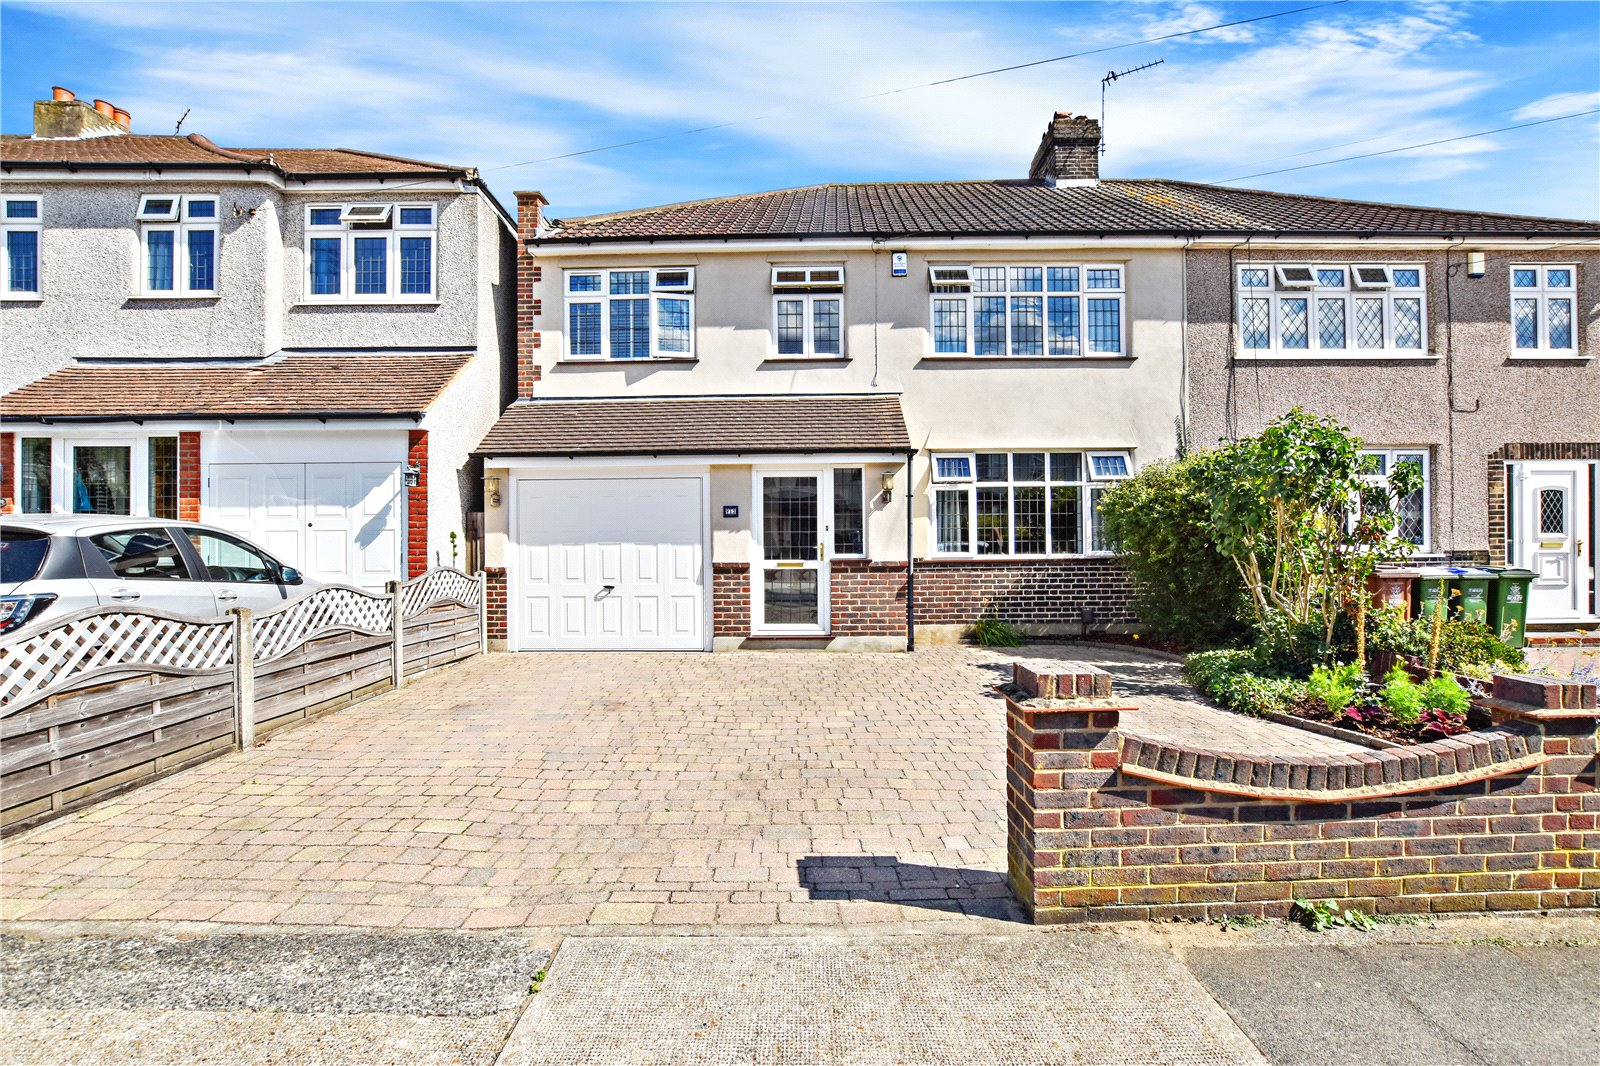 Oaklands Close, Bexleyheath, Kent, DA6